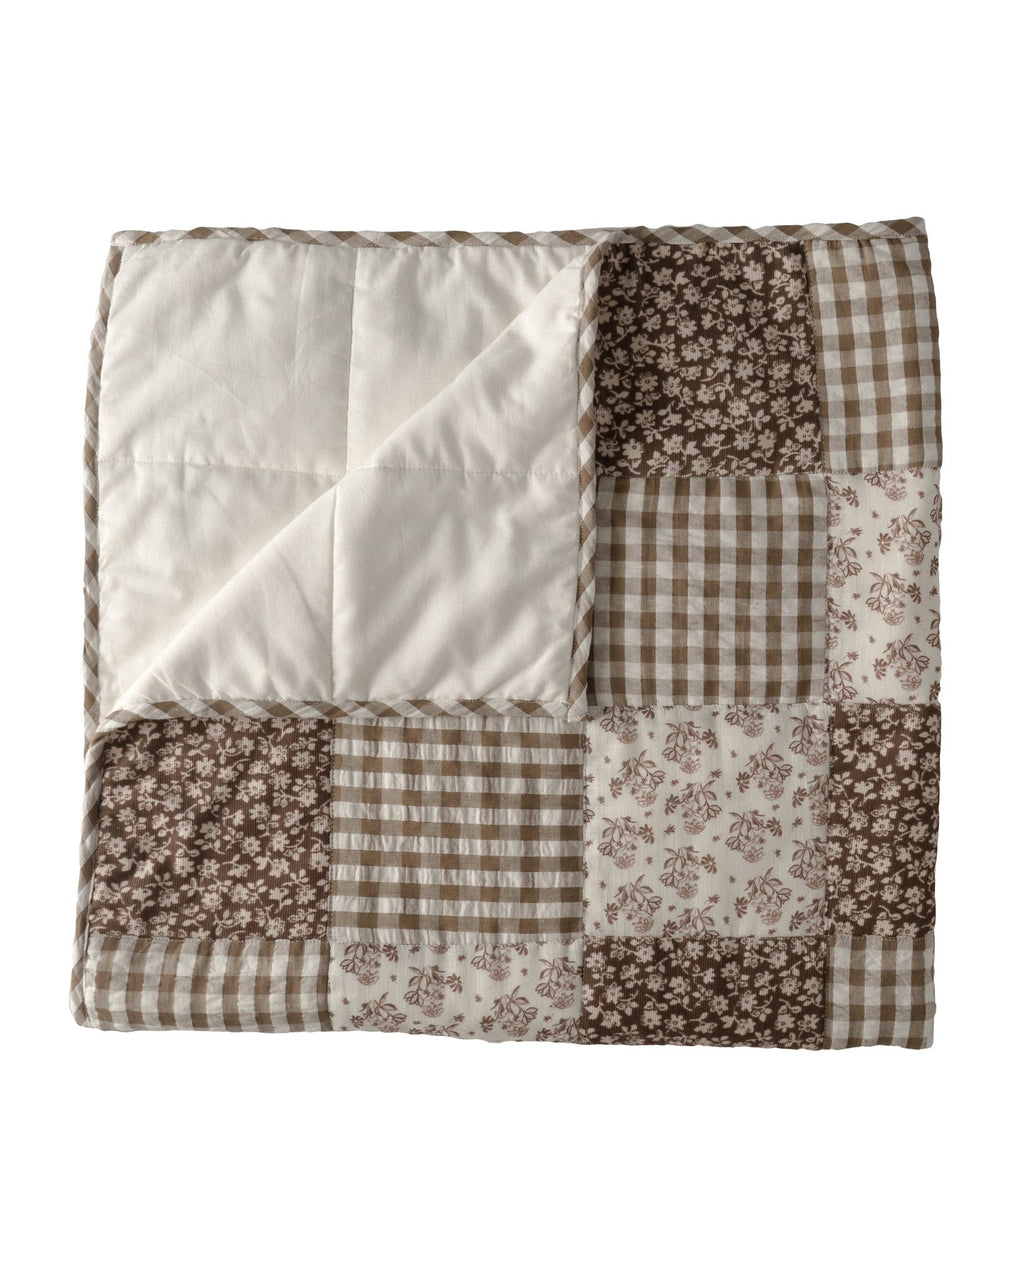 Patchwork blanket - single - nut floral